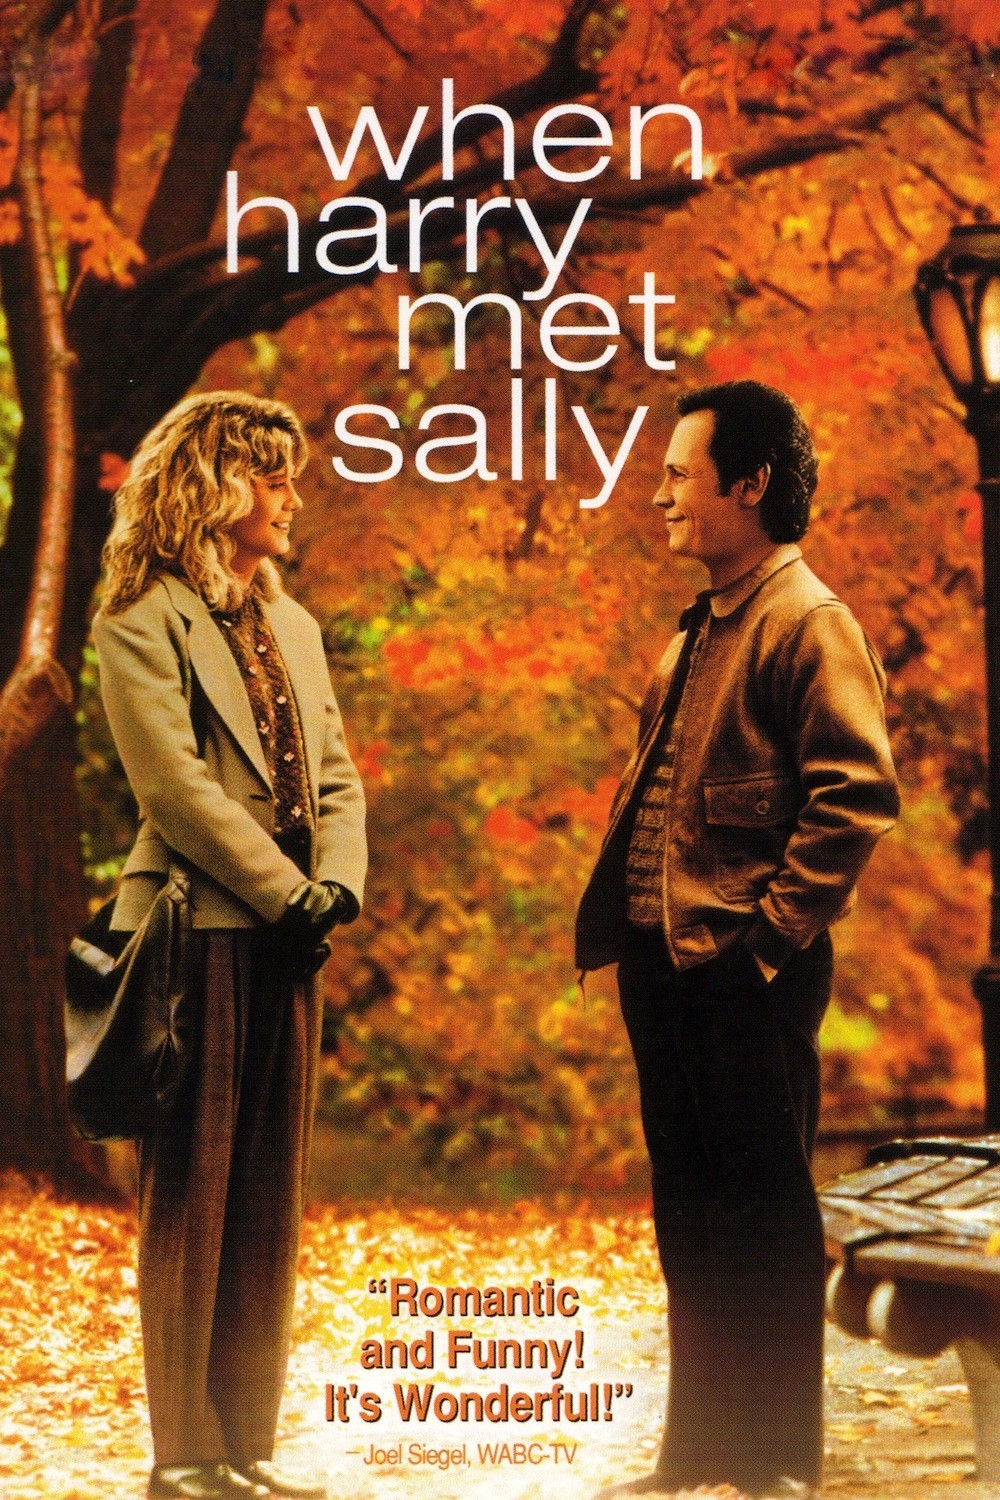 The 10 Best (Not Scary) Fall Movies - When Harry Met Sally